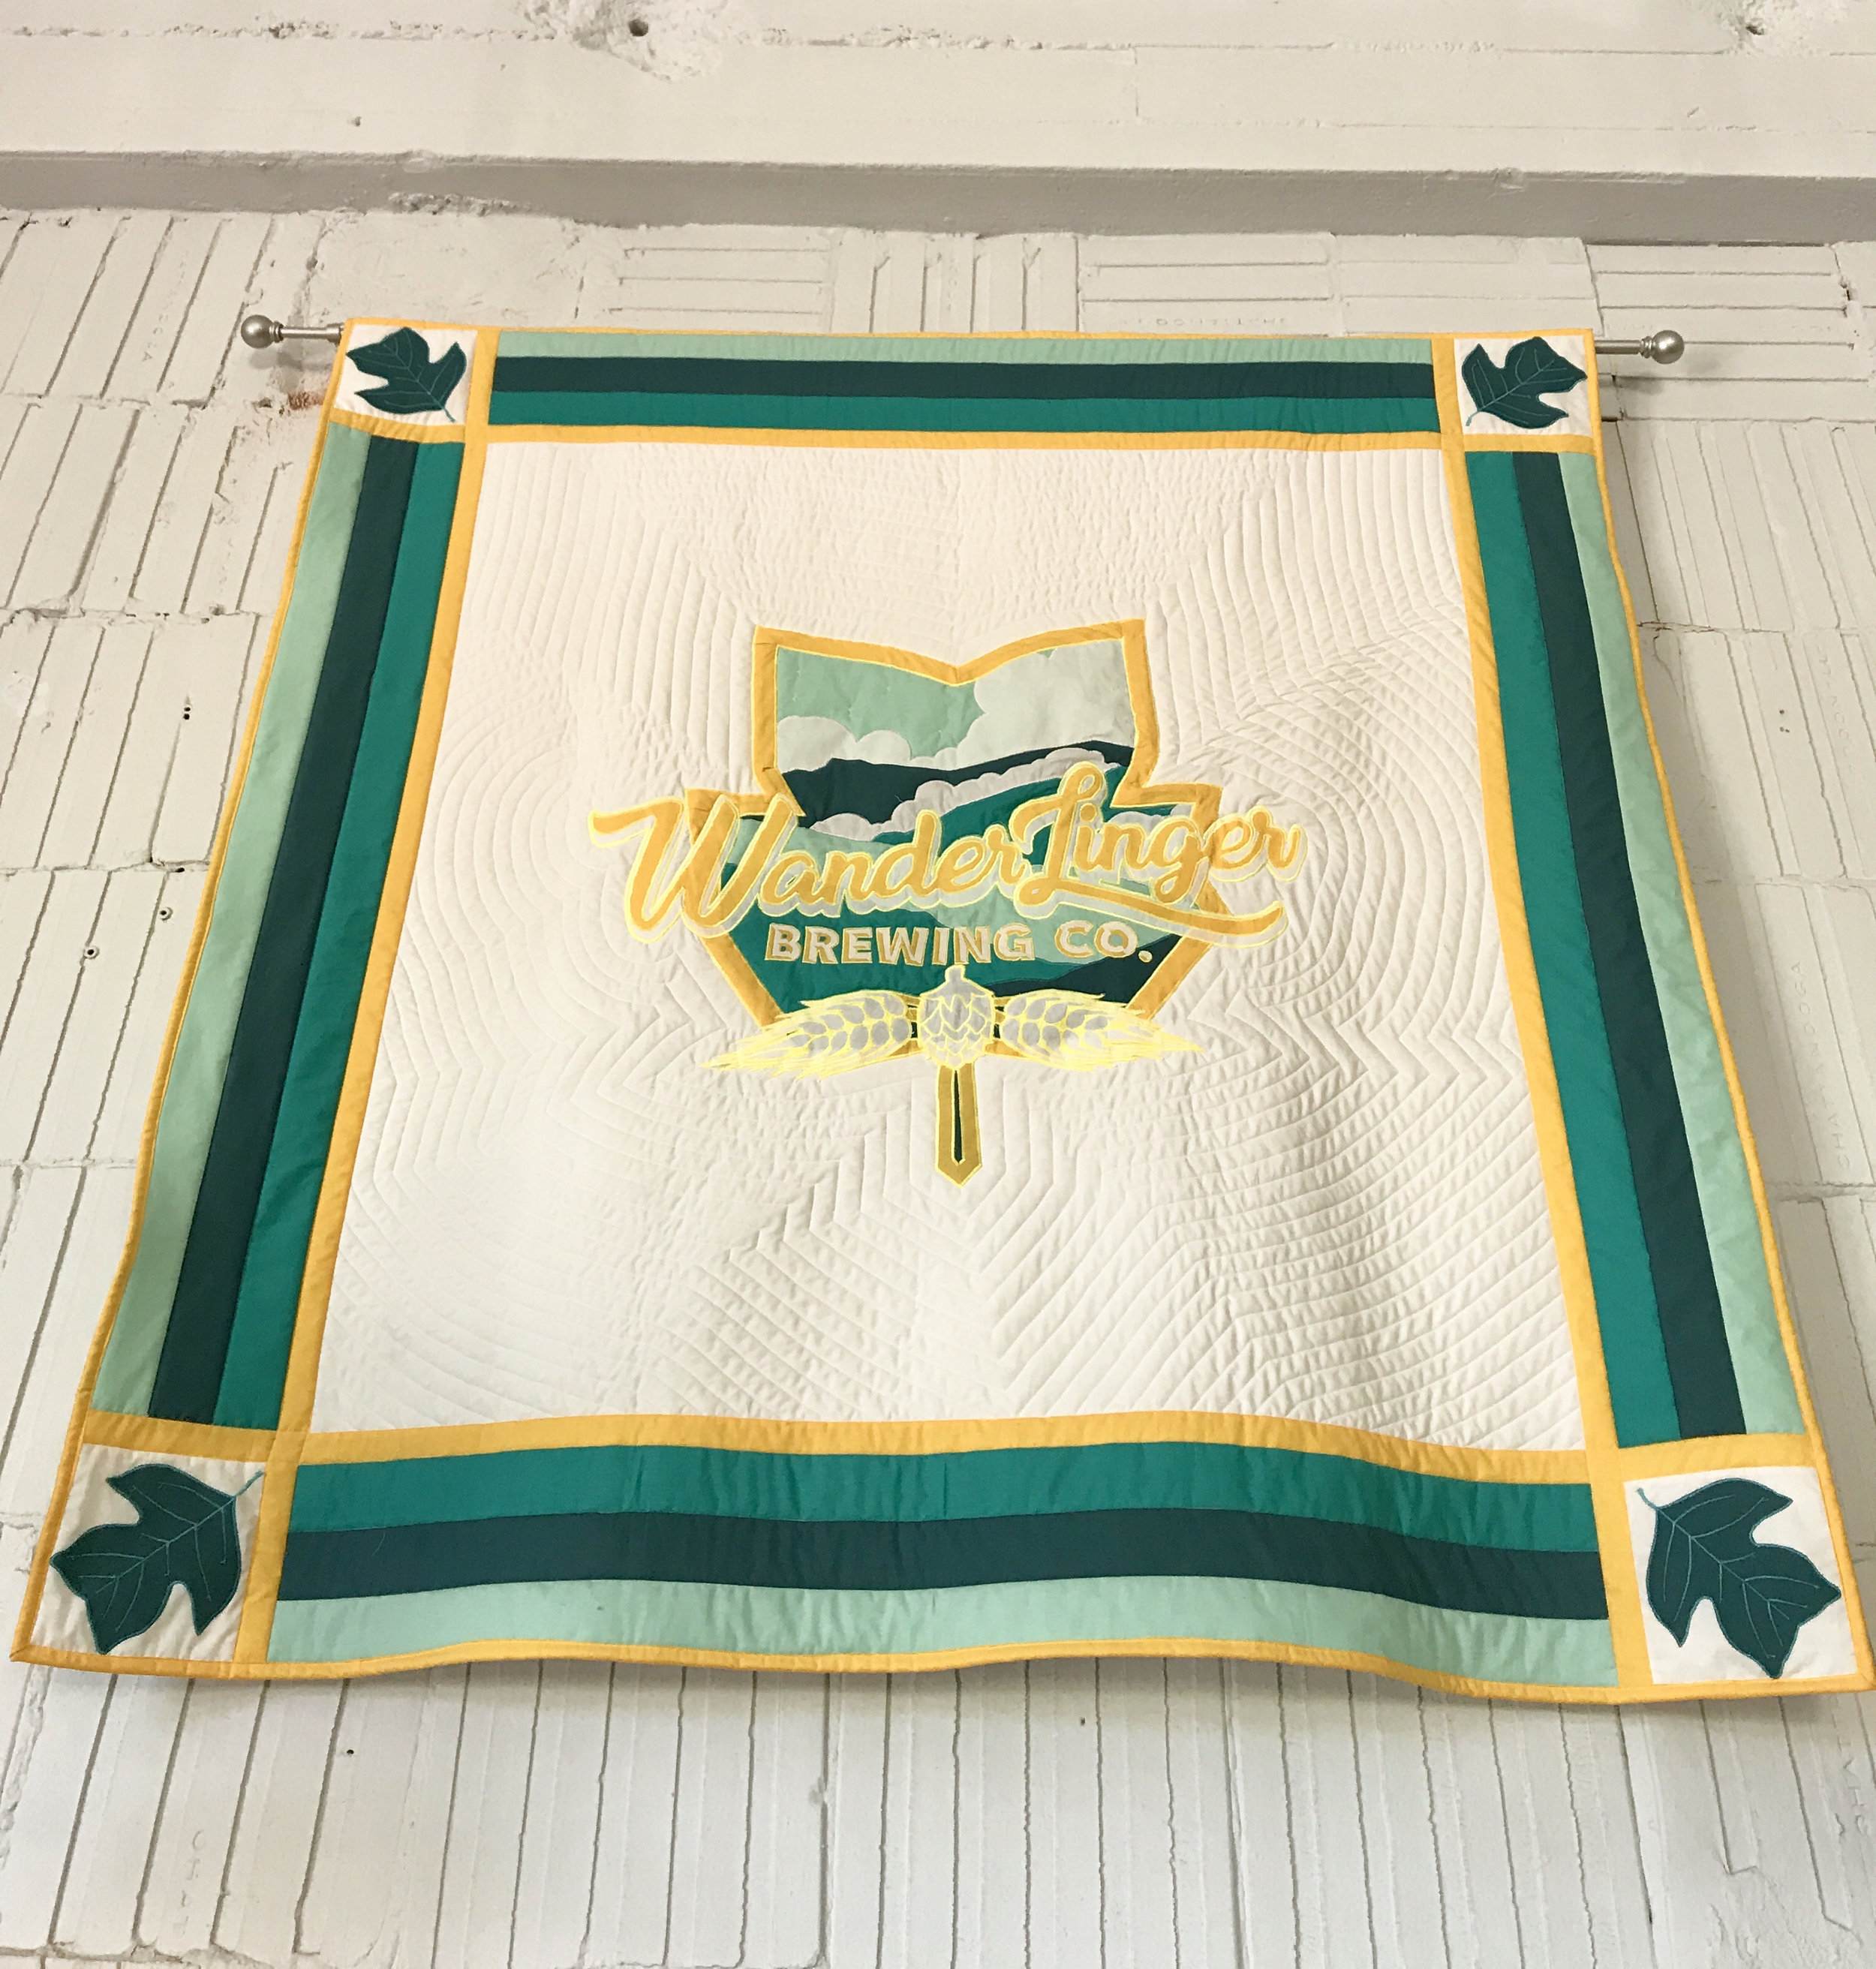 The owner's mother-in-law made this quilted banner for the brewery.